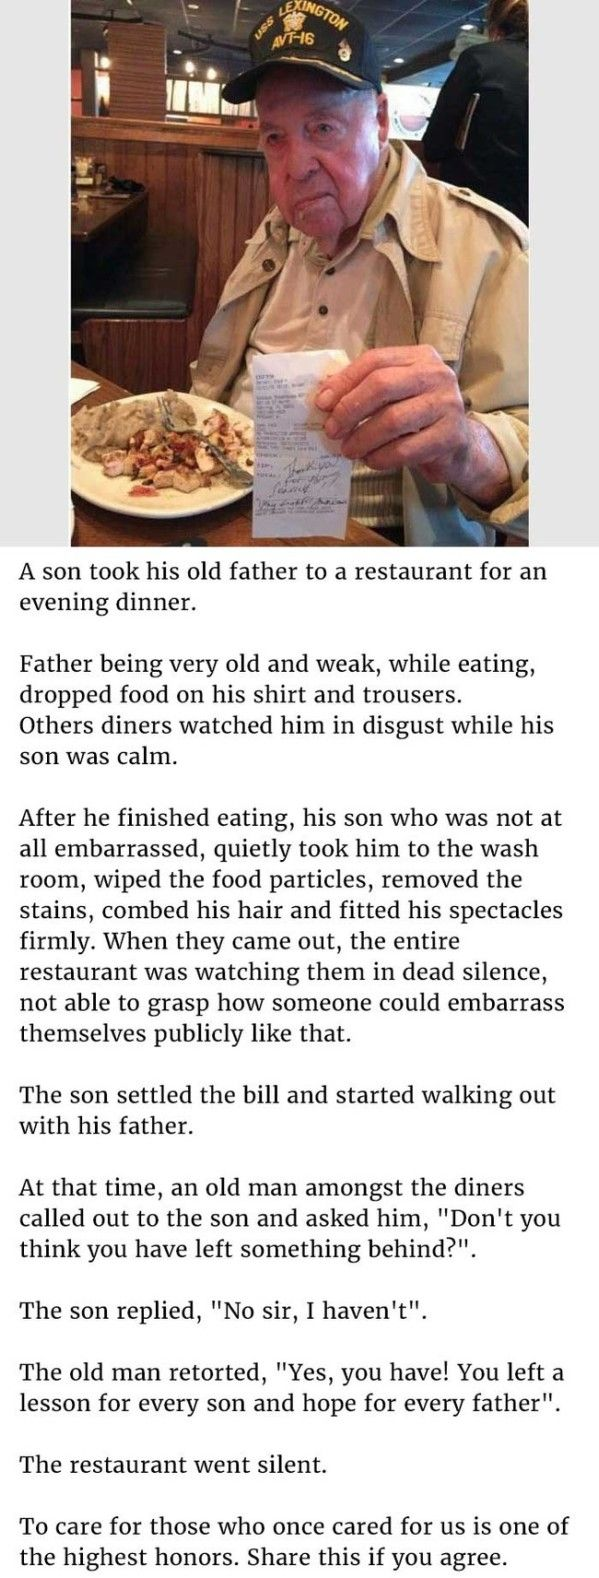 When An Elderly Man Was Being Judged In A Restaurant, His Son Did The Best Thing